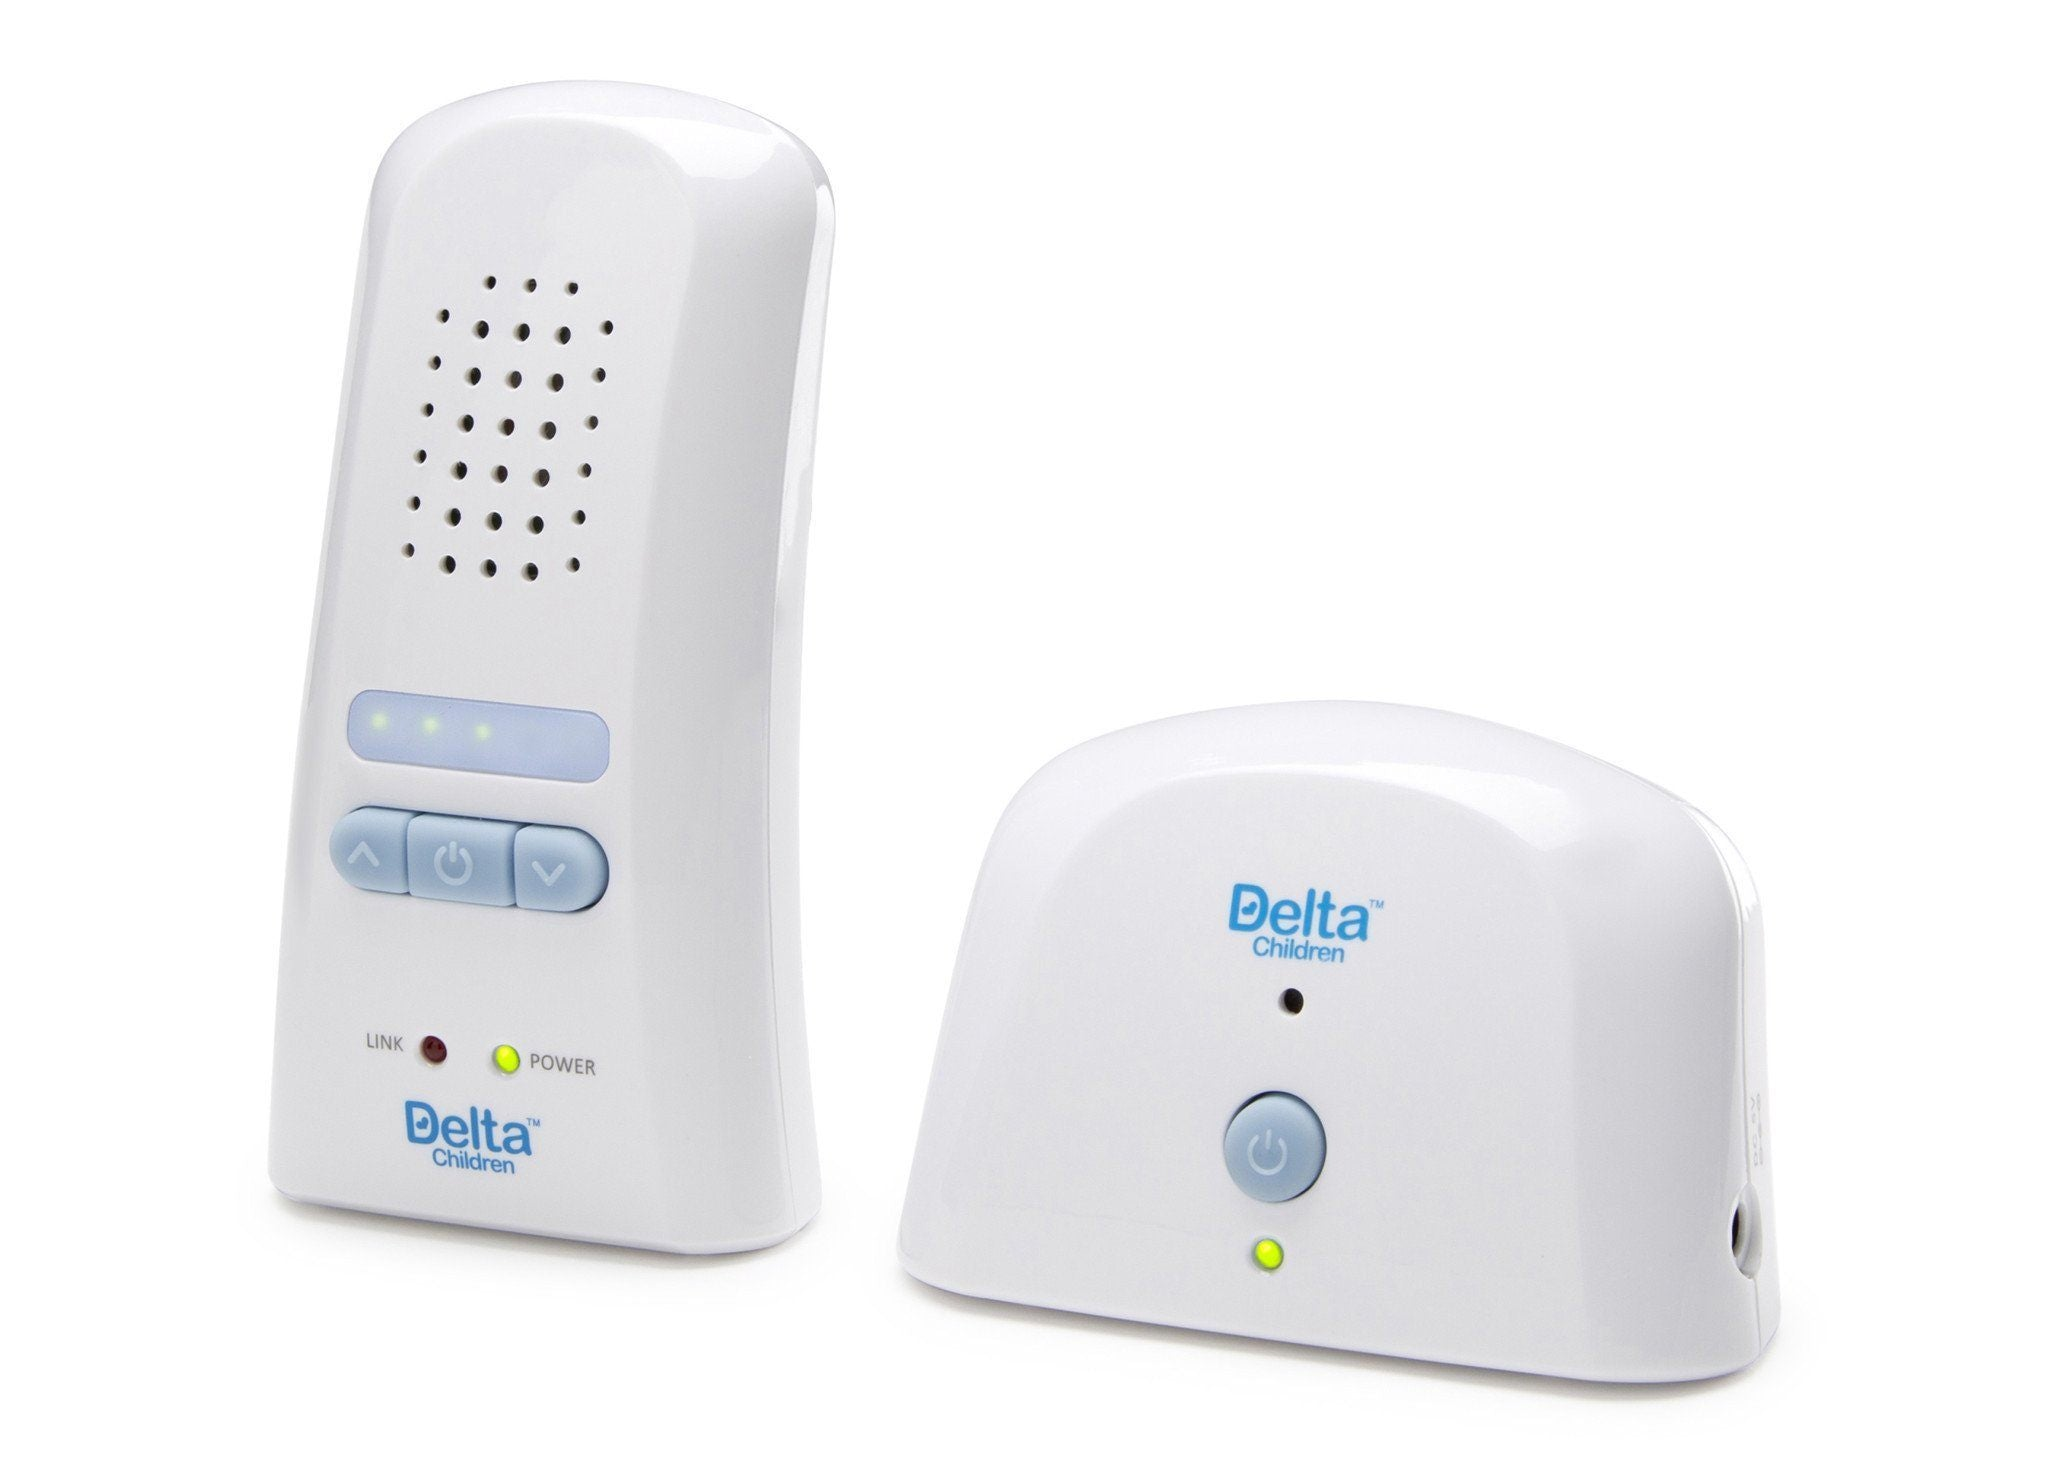 Delta Children Safe-n-Clear White (114) Digital Baby Monitor with LED, Side View a2a